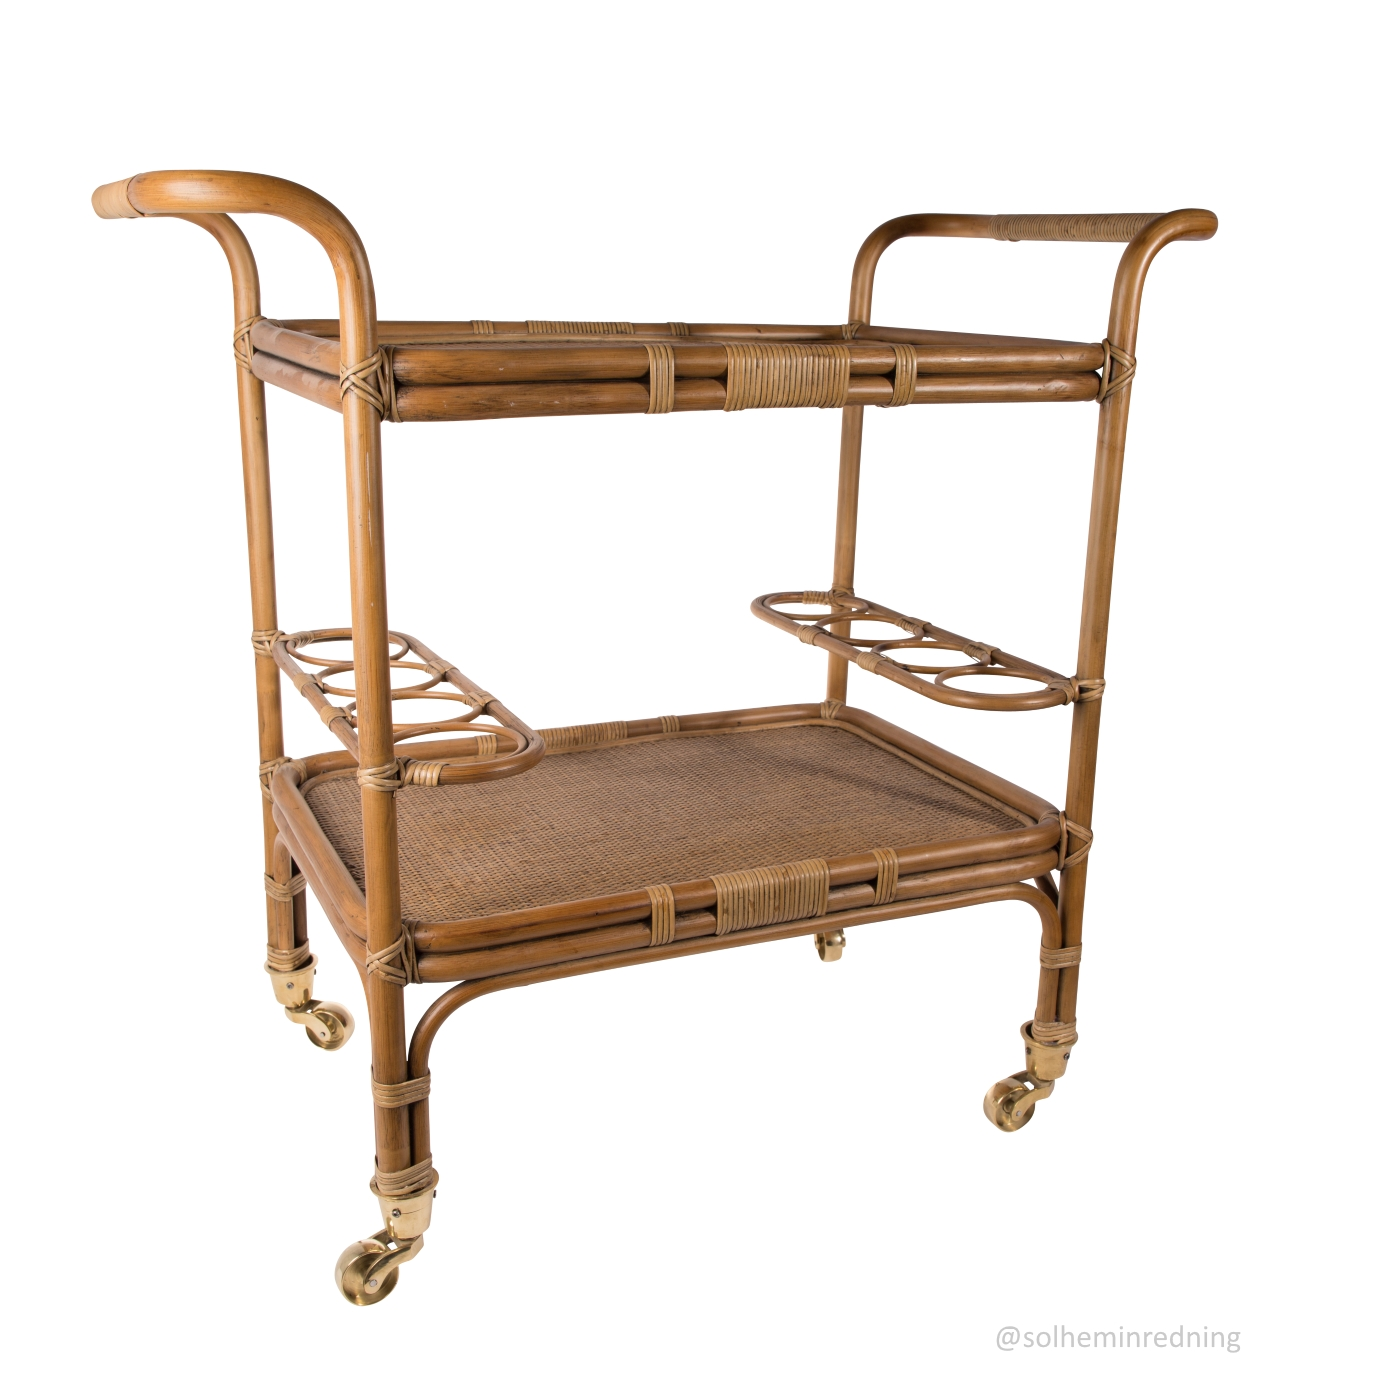 Drinkvagn CARLO trolley antikbrun, Sika-design